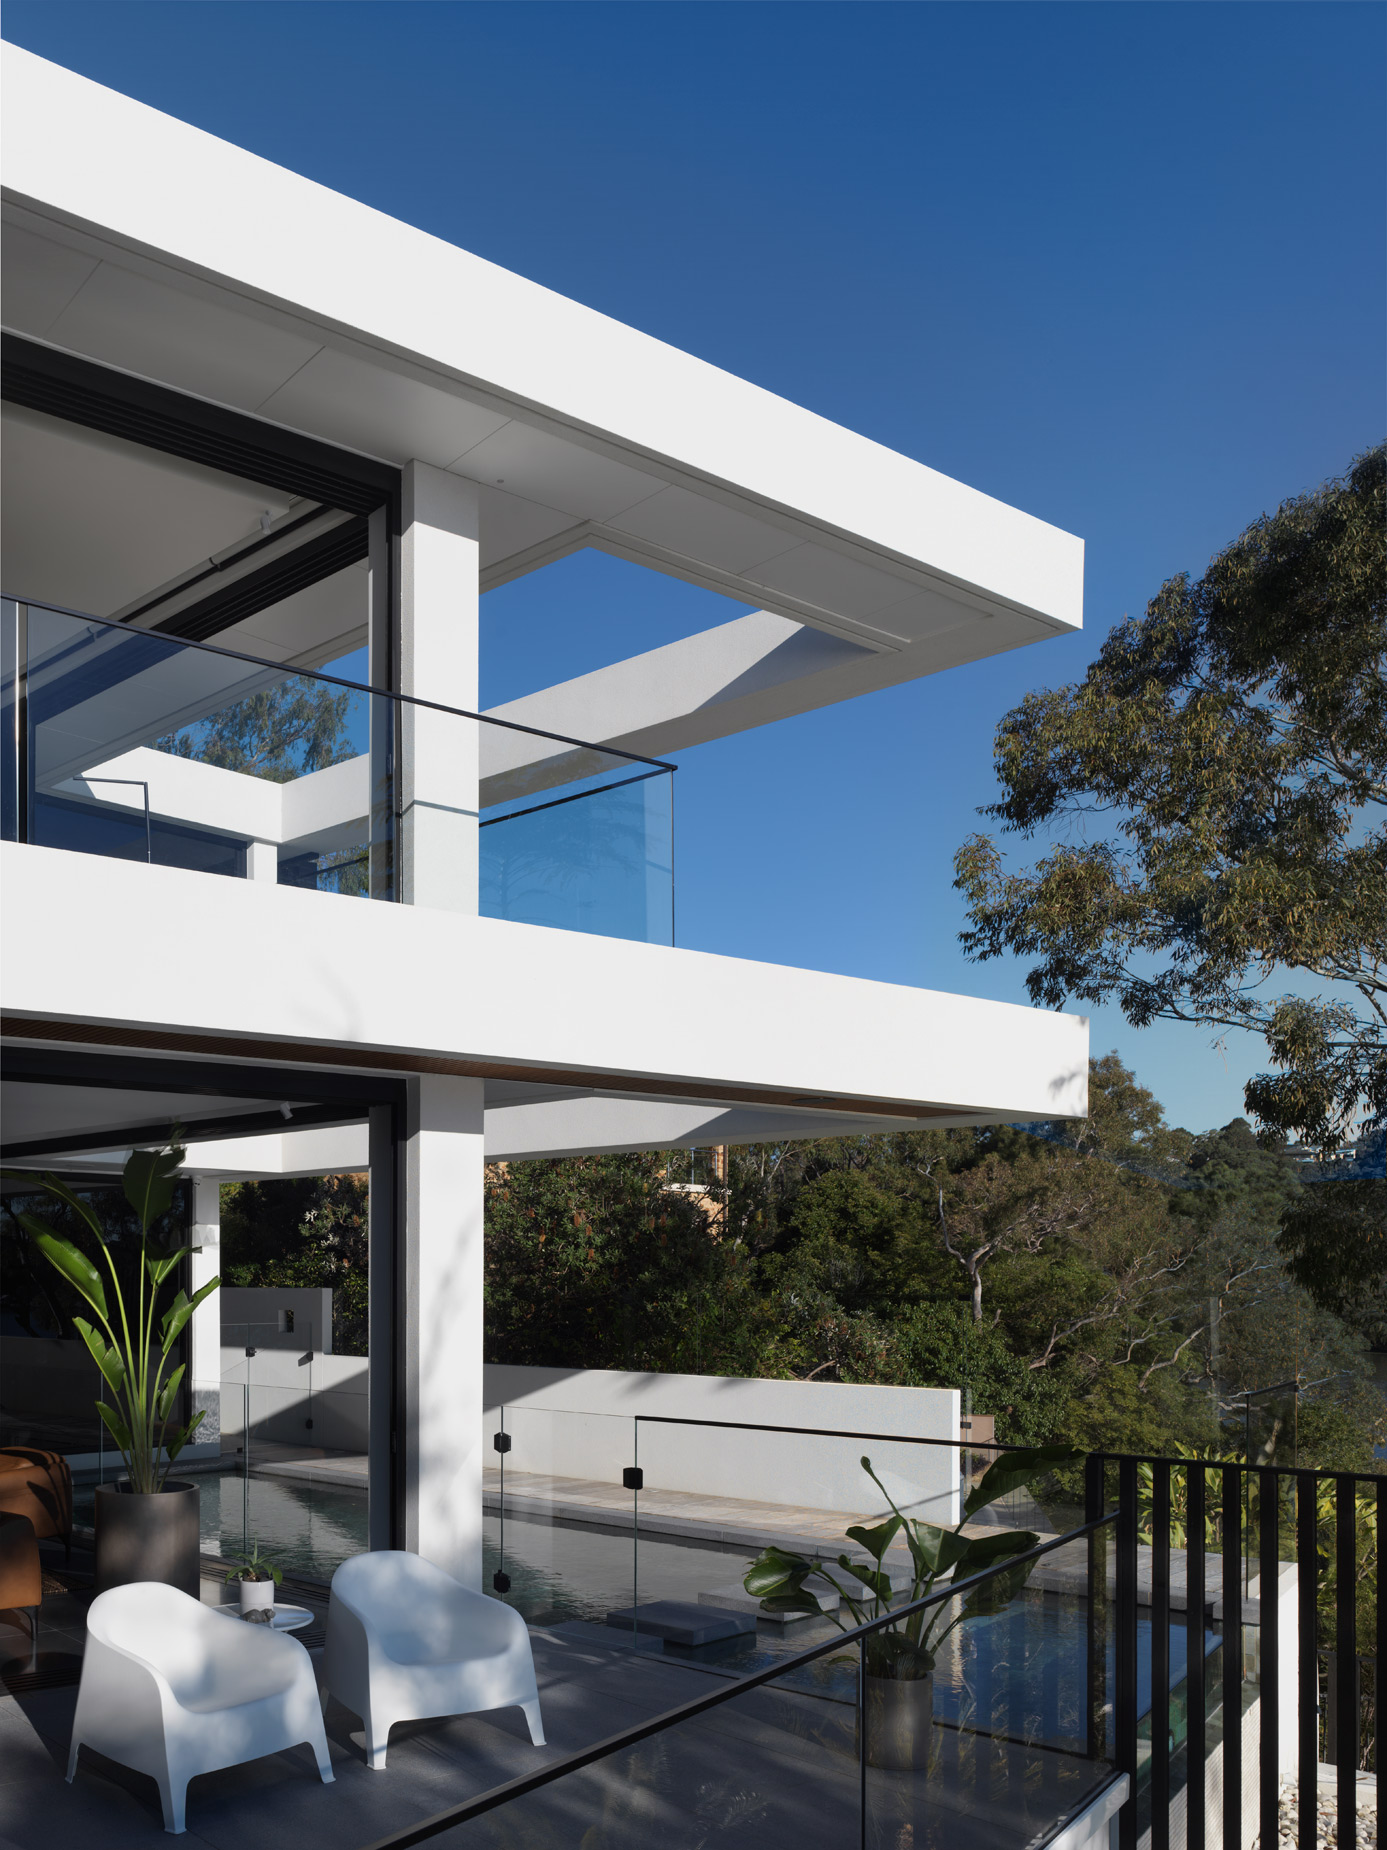 luke-butterly-2020-Oyster-Bay-House-by-Couvaras-Architecture-Sydney-NSW-18